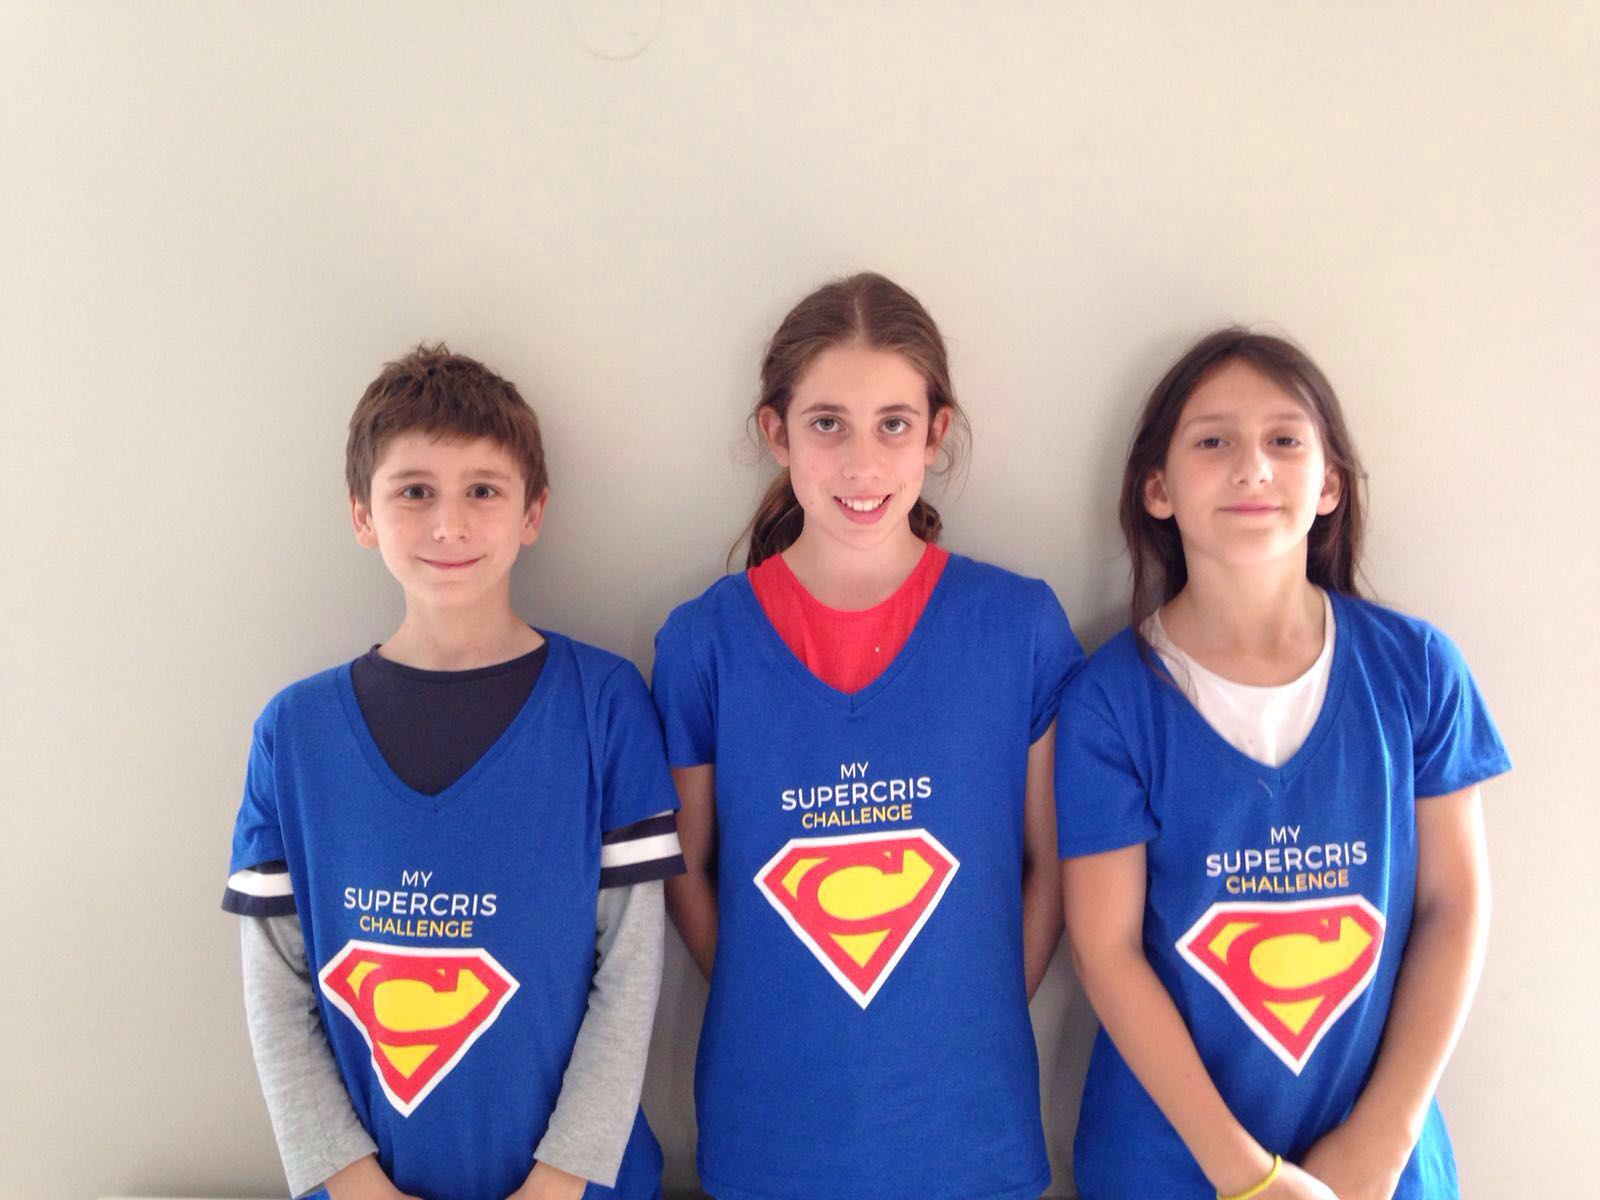 The kids band – My SuperCRIS Challenge